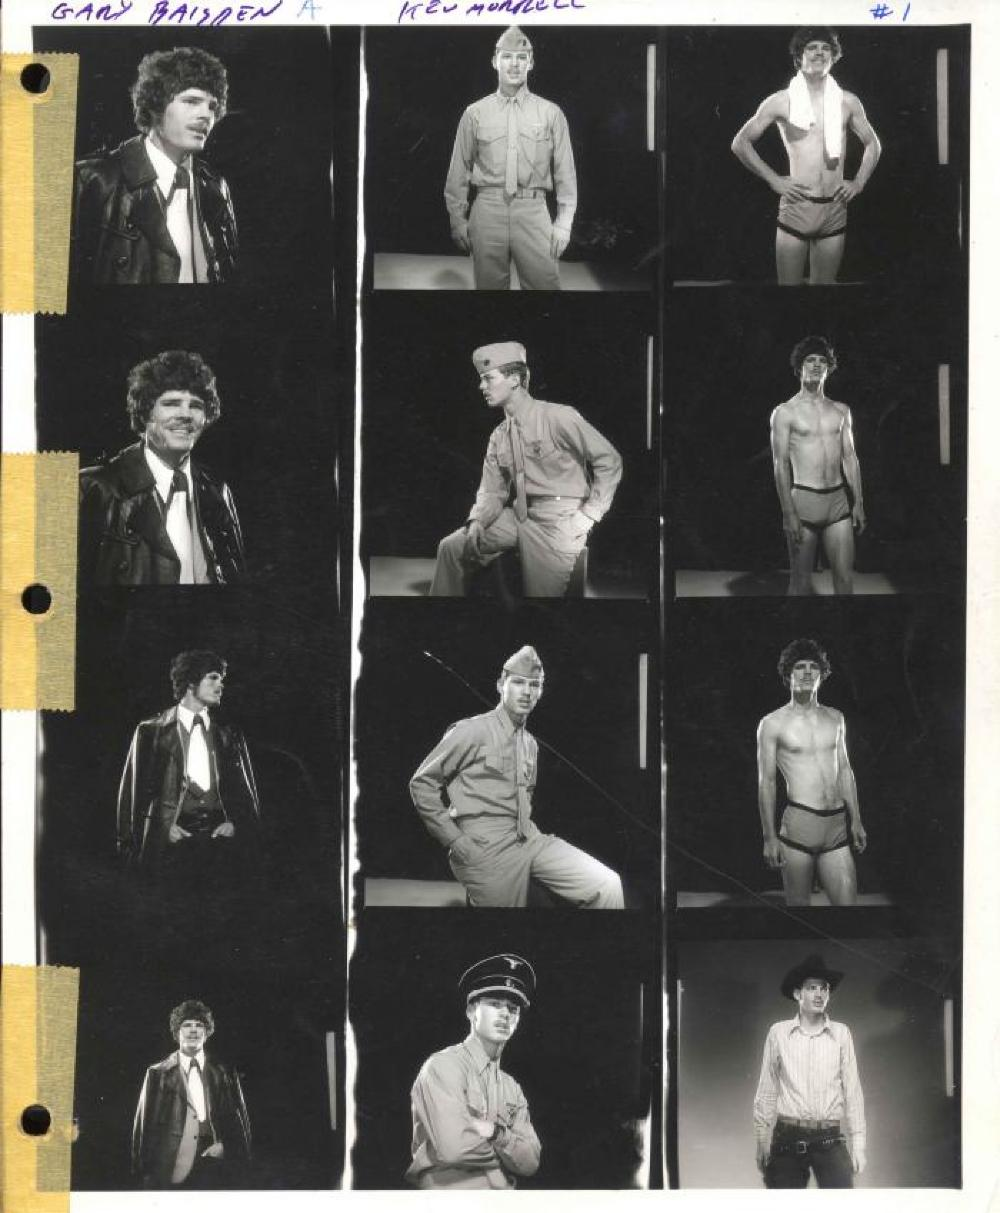 Mizer's black and white contact sheet, c. 1975.